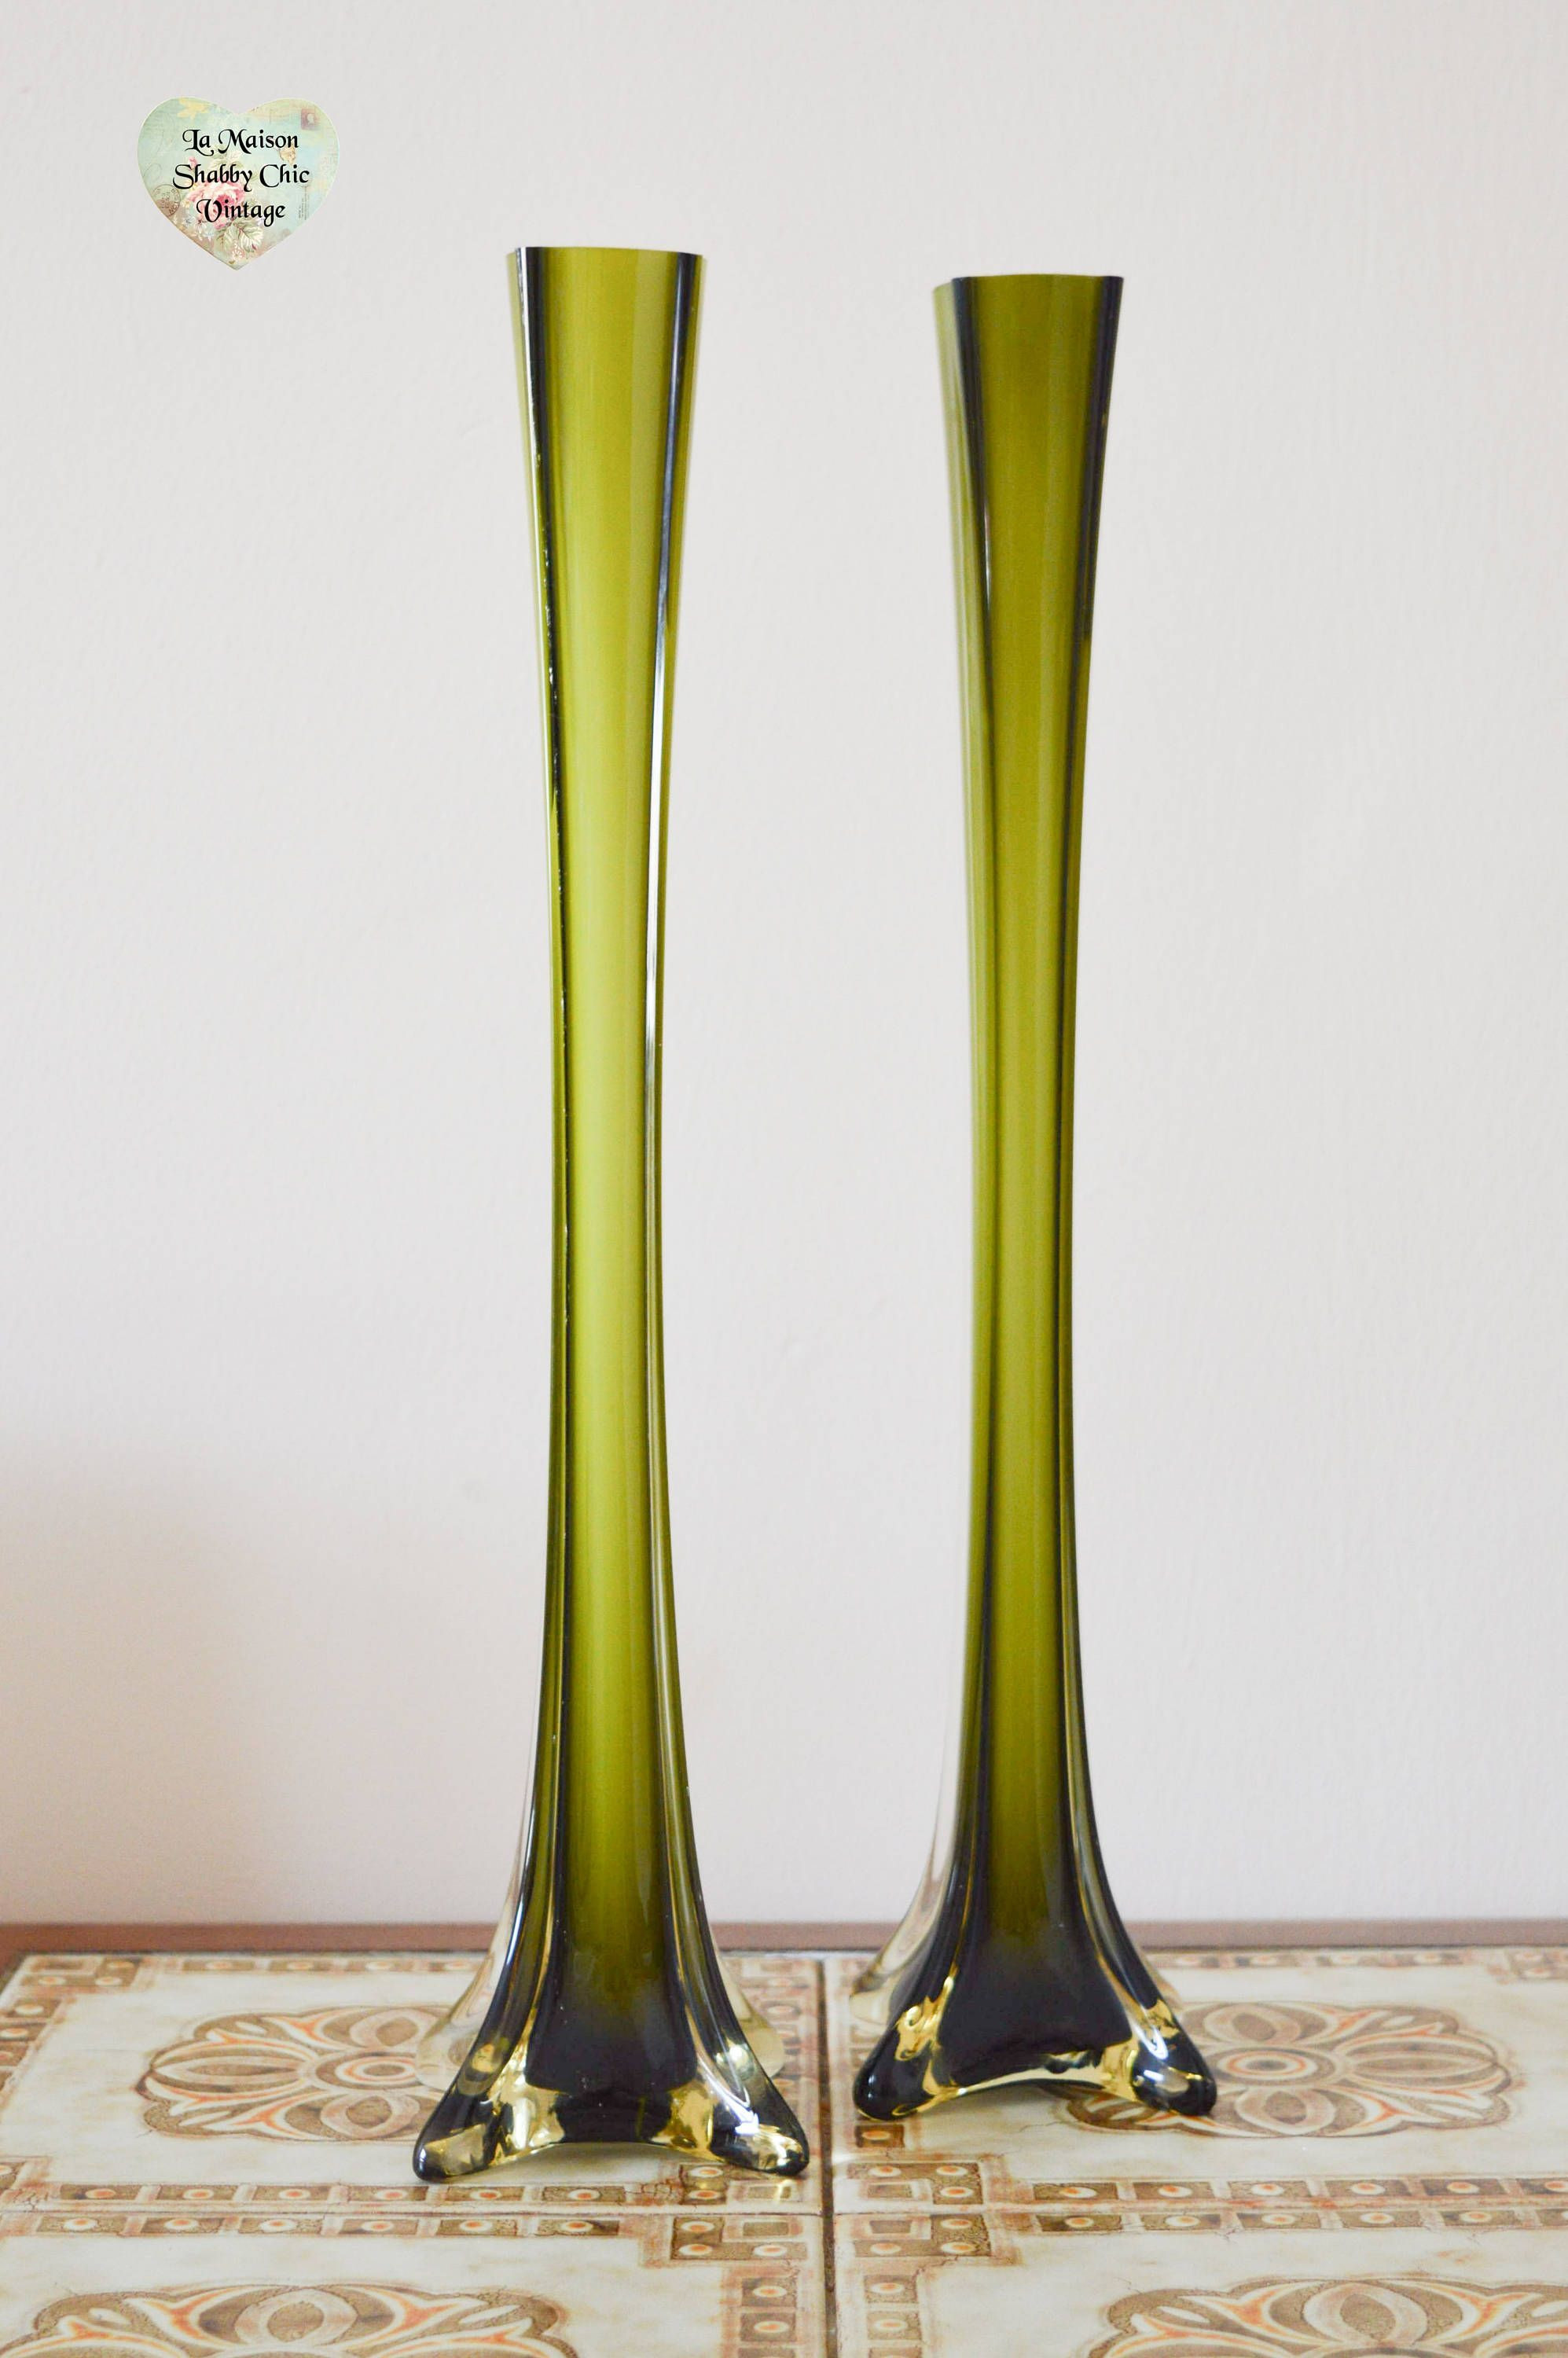 Tiffany and Co Glass Vase Of 35 Antique Green Glass Vases the Weekly World In Retro Skinny Glass Vases Pair 2 Shades Of Green Retro Flower Vases